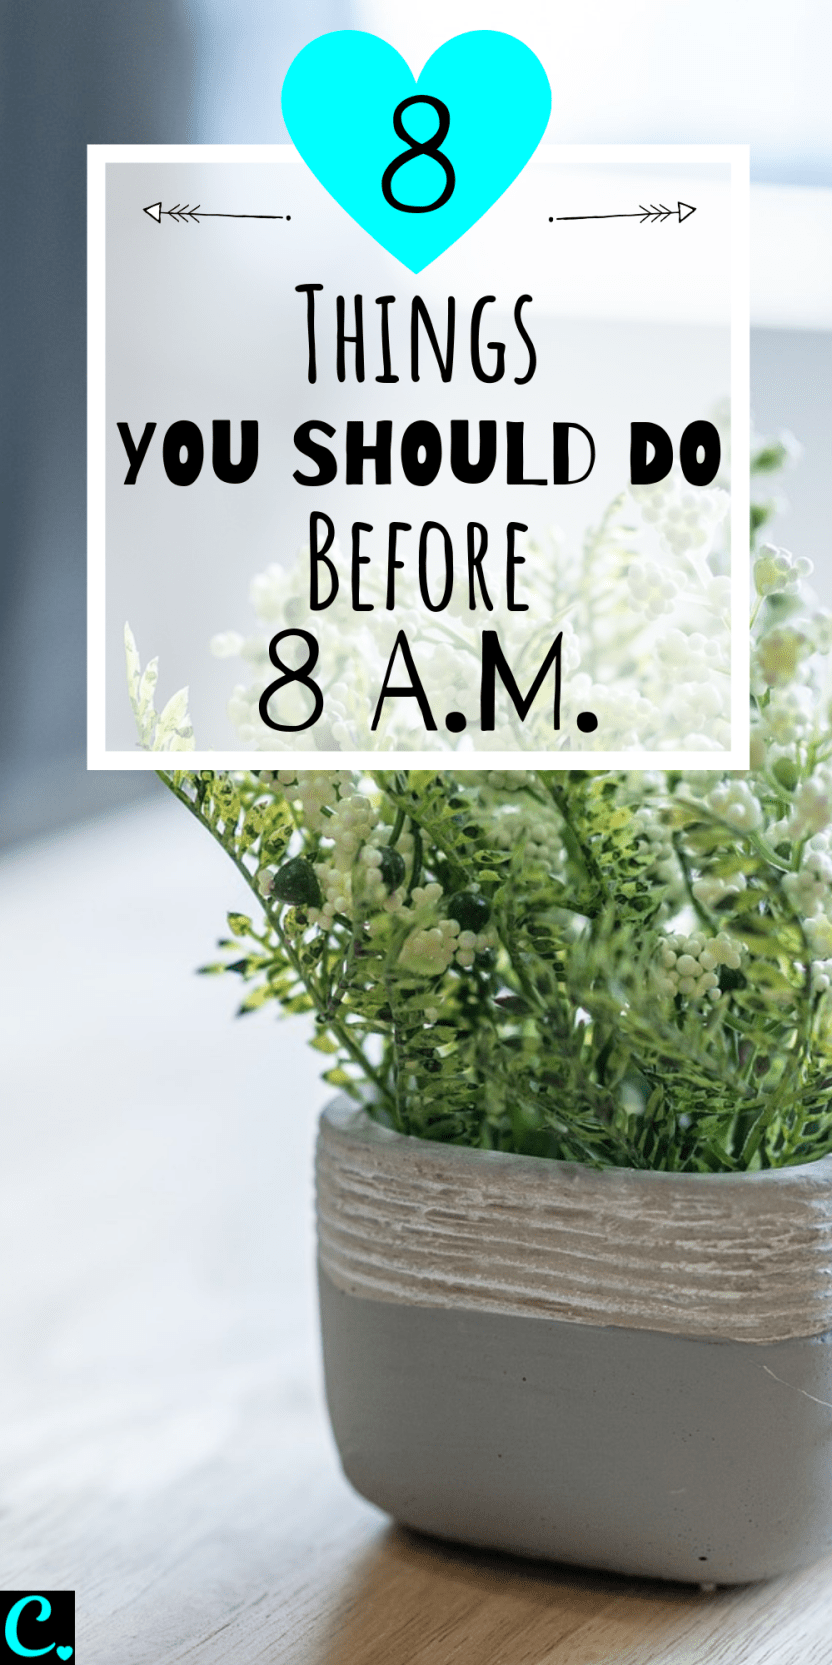 The Best Morning Routine: 8 Things To Do Before 8 A.M. | How to be productive | Personal development | Productivity tips | Habits for success | Via: https://captivatingcrazy.com #captivatingcrazy #bestmorningroutine #productivitytips #howtoachievegoals #habitsofsuccessfulpeople